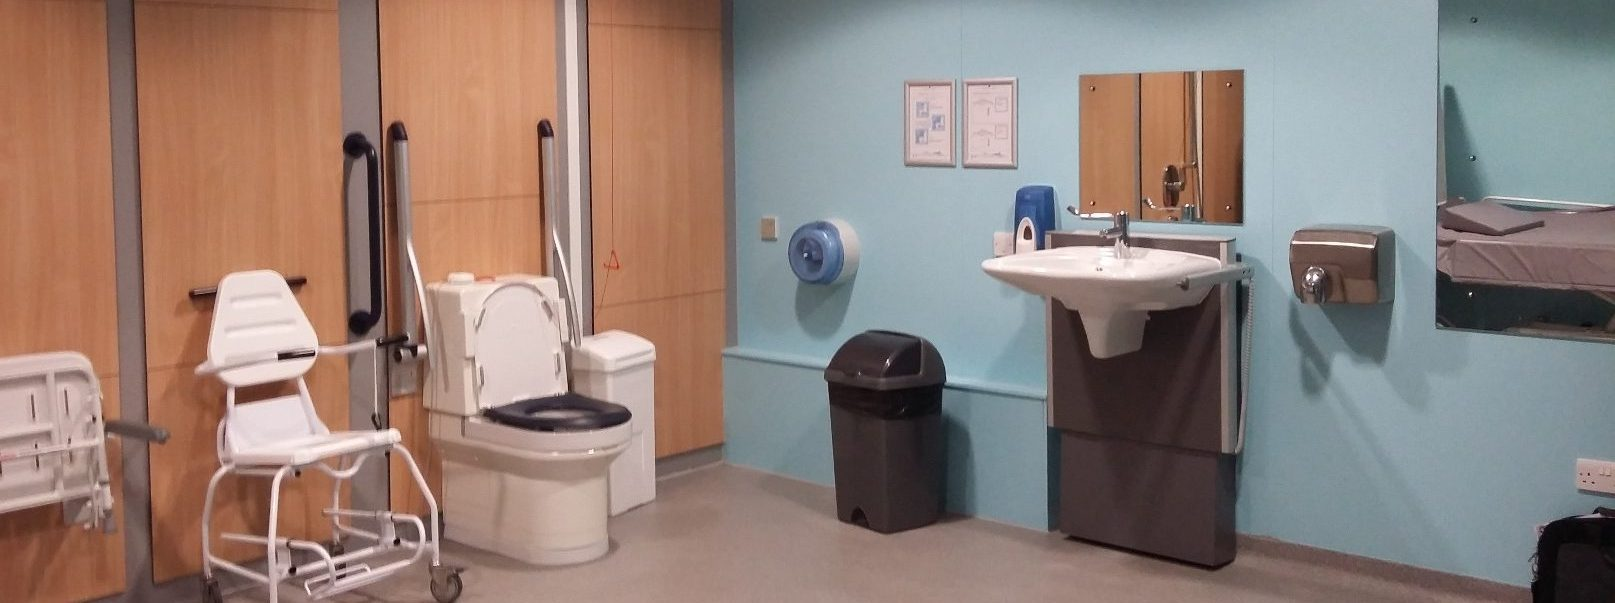 Newly registered Changing Places toilet in Alford